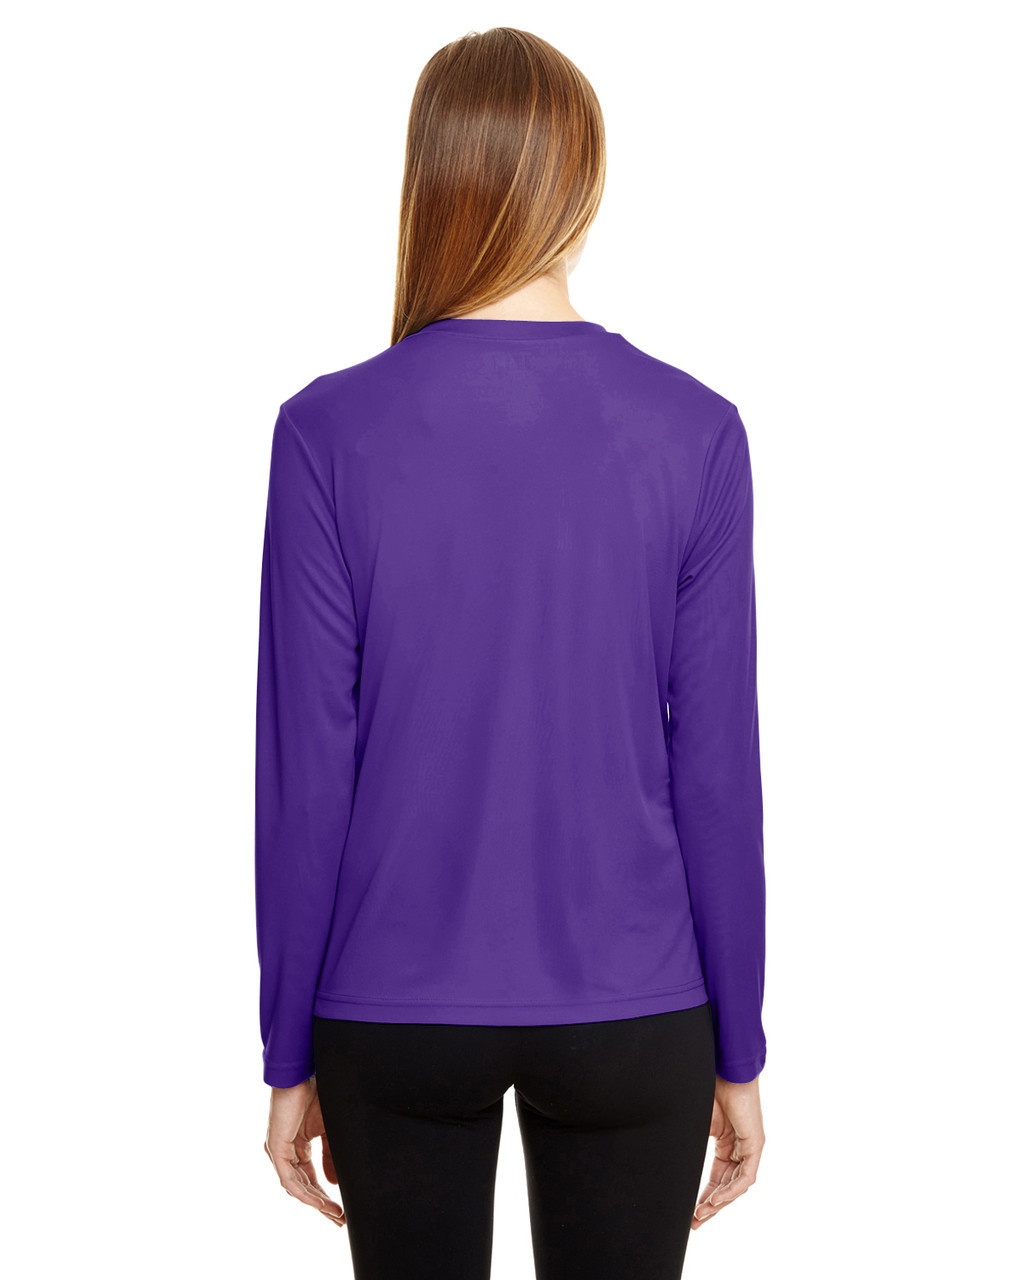 Sport Purple - TT11WL Team 365 Ladies' Zone Performance Long-Sleeve T-Shirt